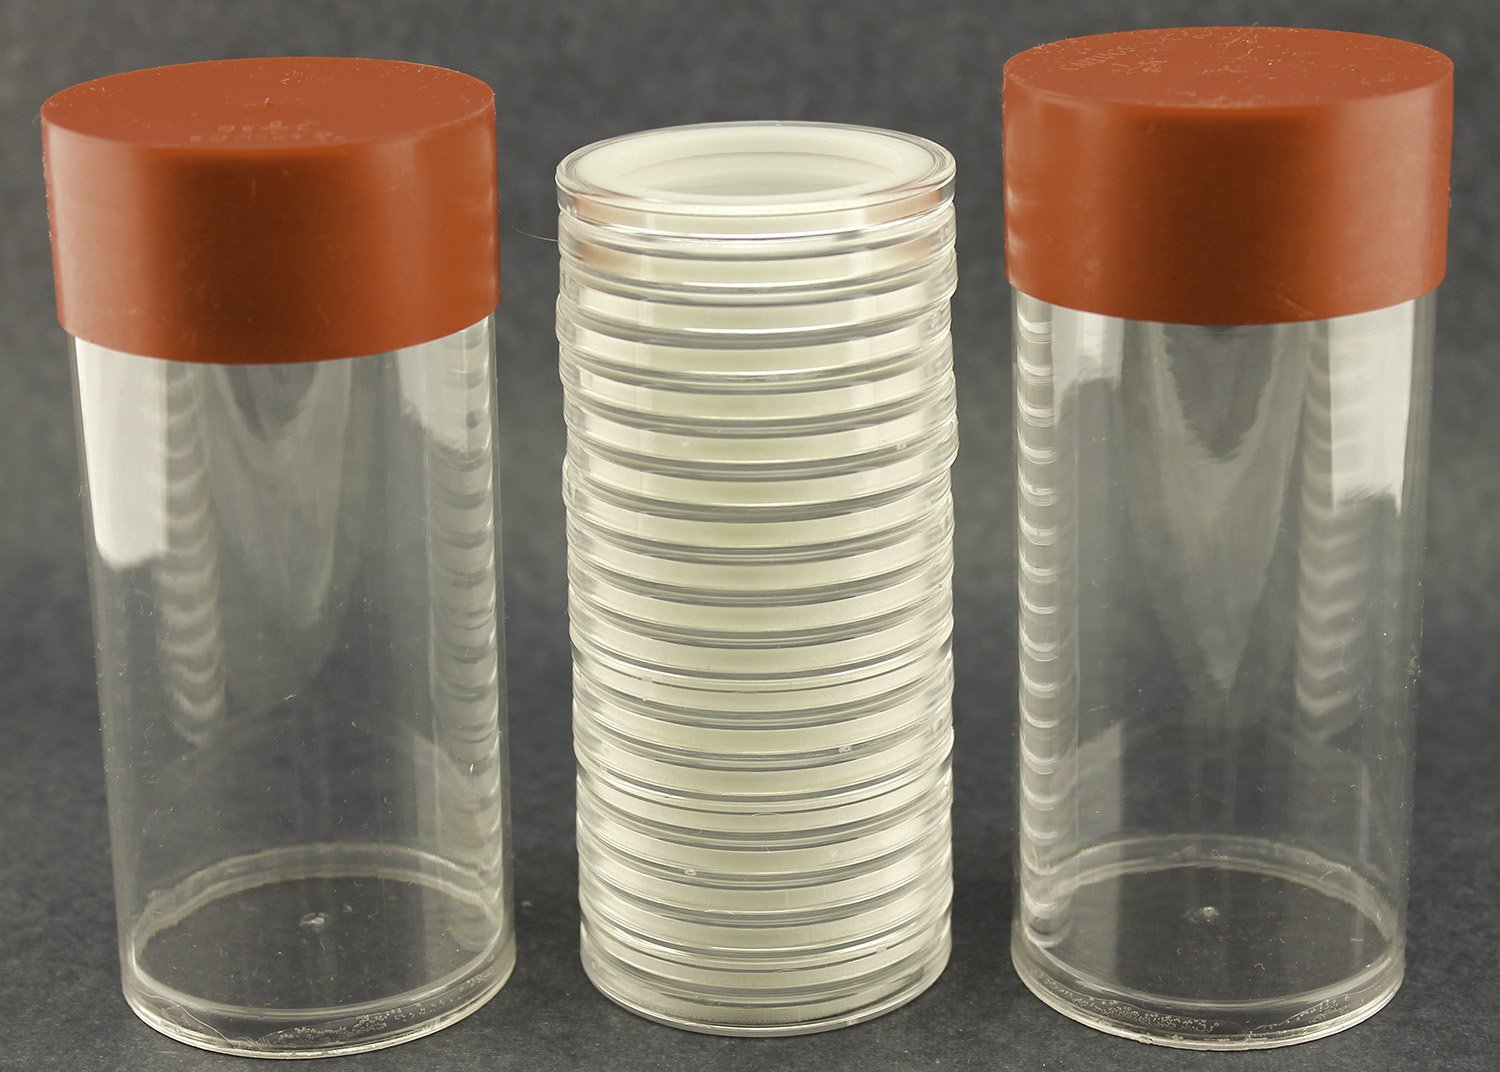 Air-tite 29mm Black Ring Coin Holder Capsules for 1//2oz Gold Libertads and Onza 3